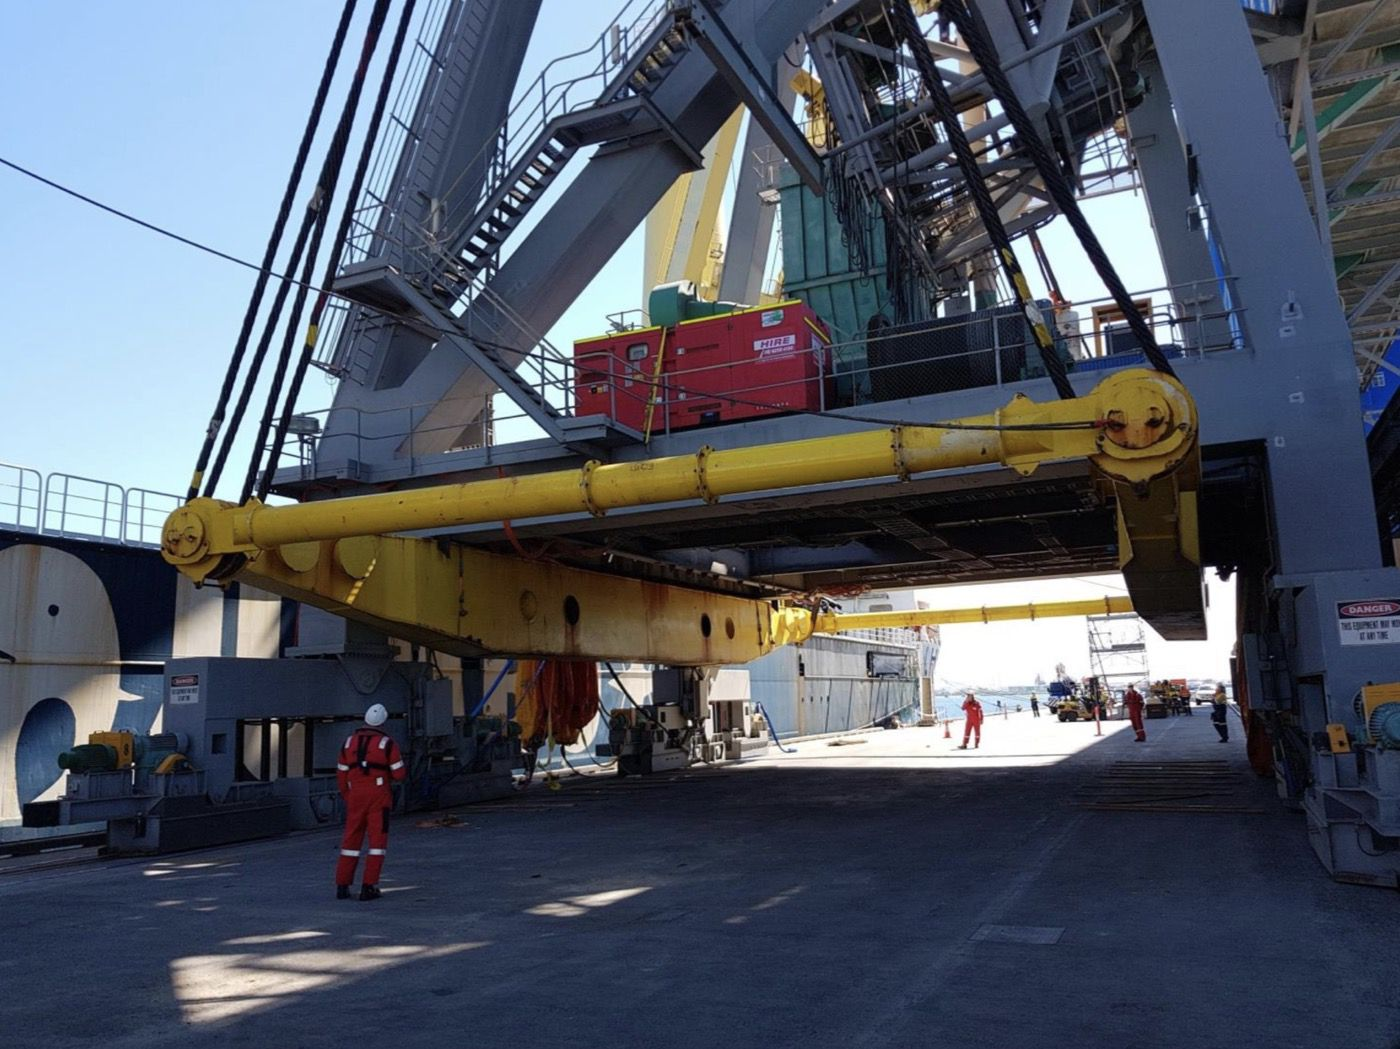 4-fremantle-port-crane-removal@2x